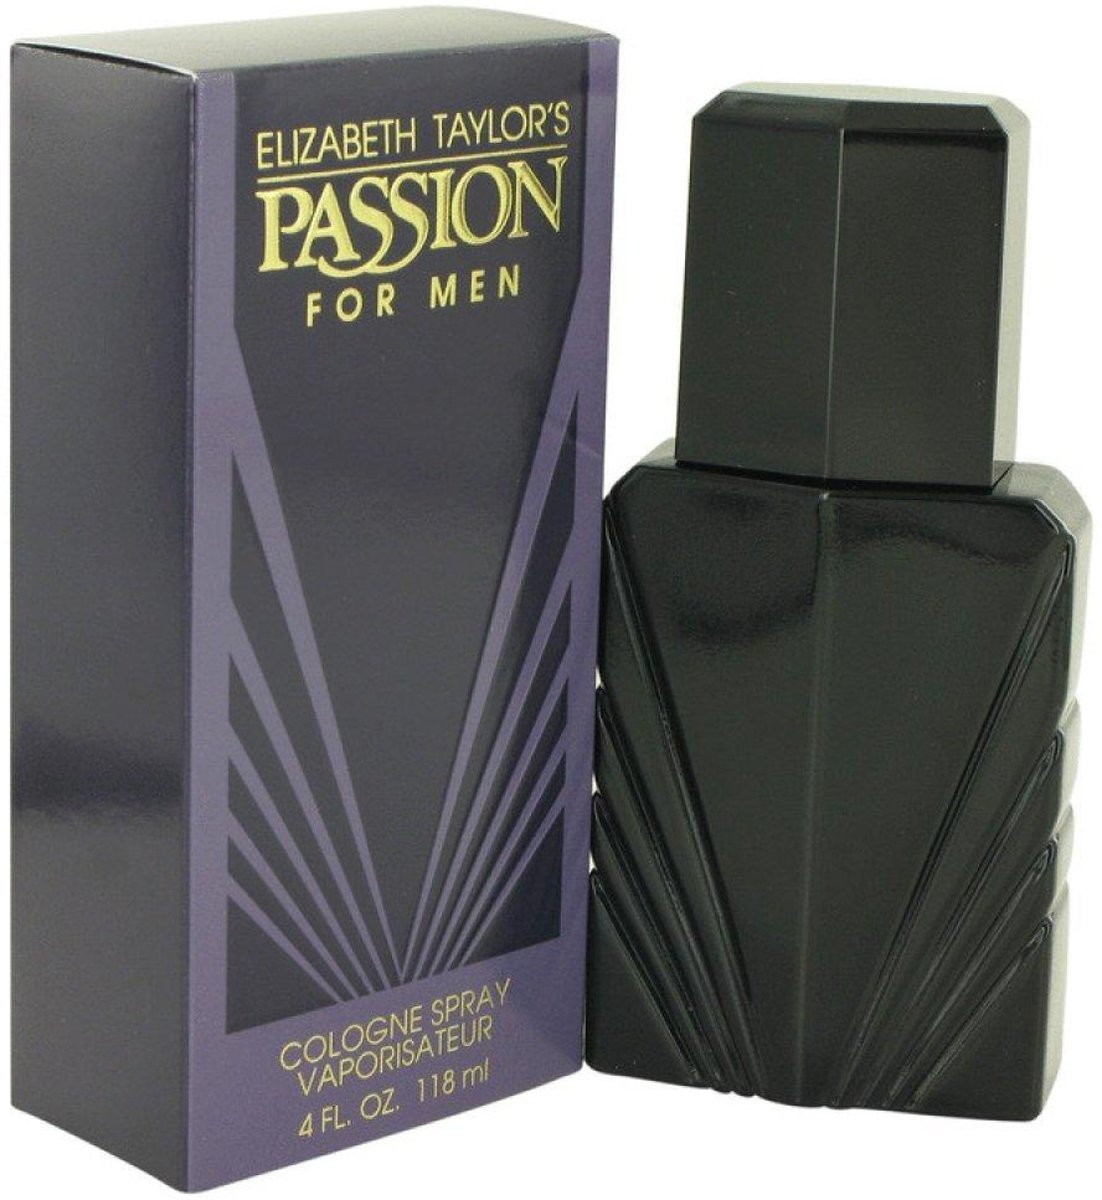 Passion for Men 118ml EDC Spray